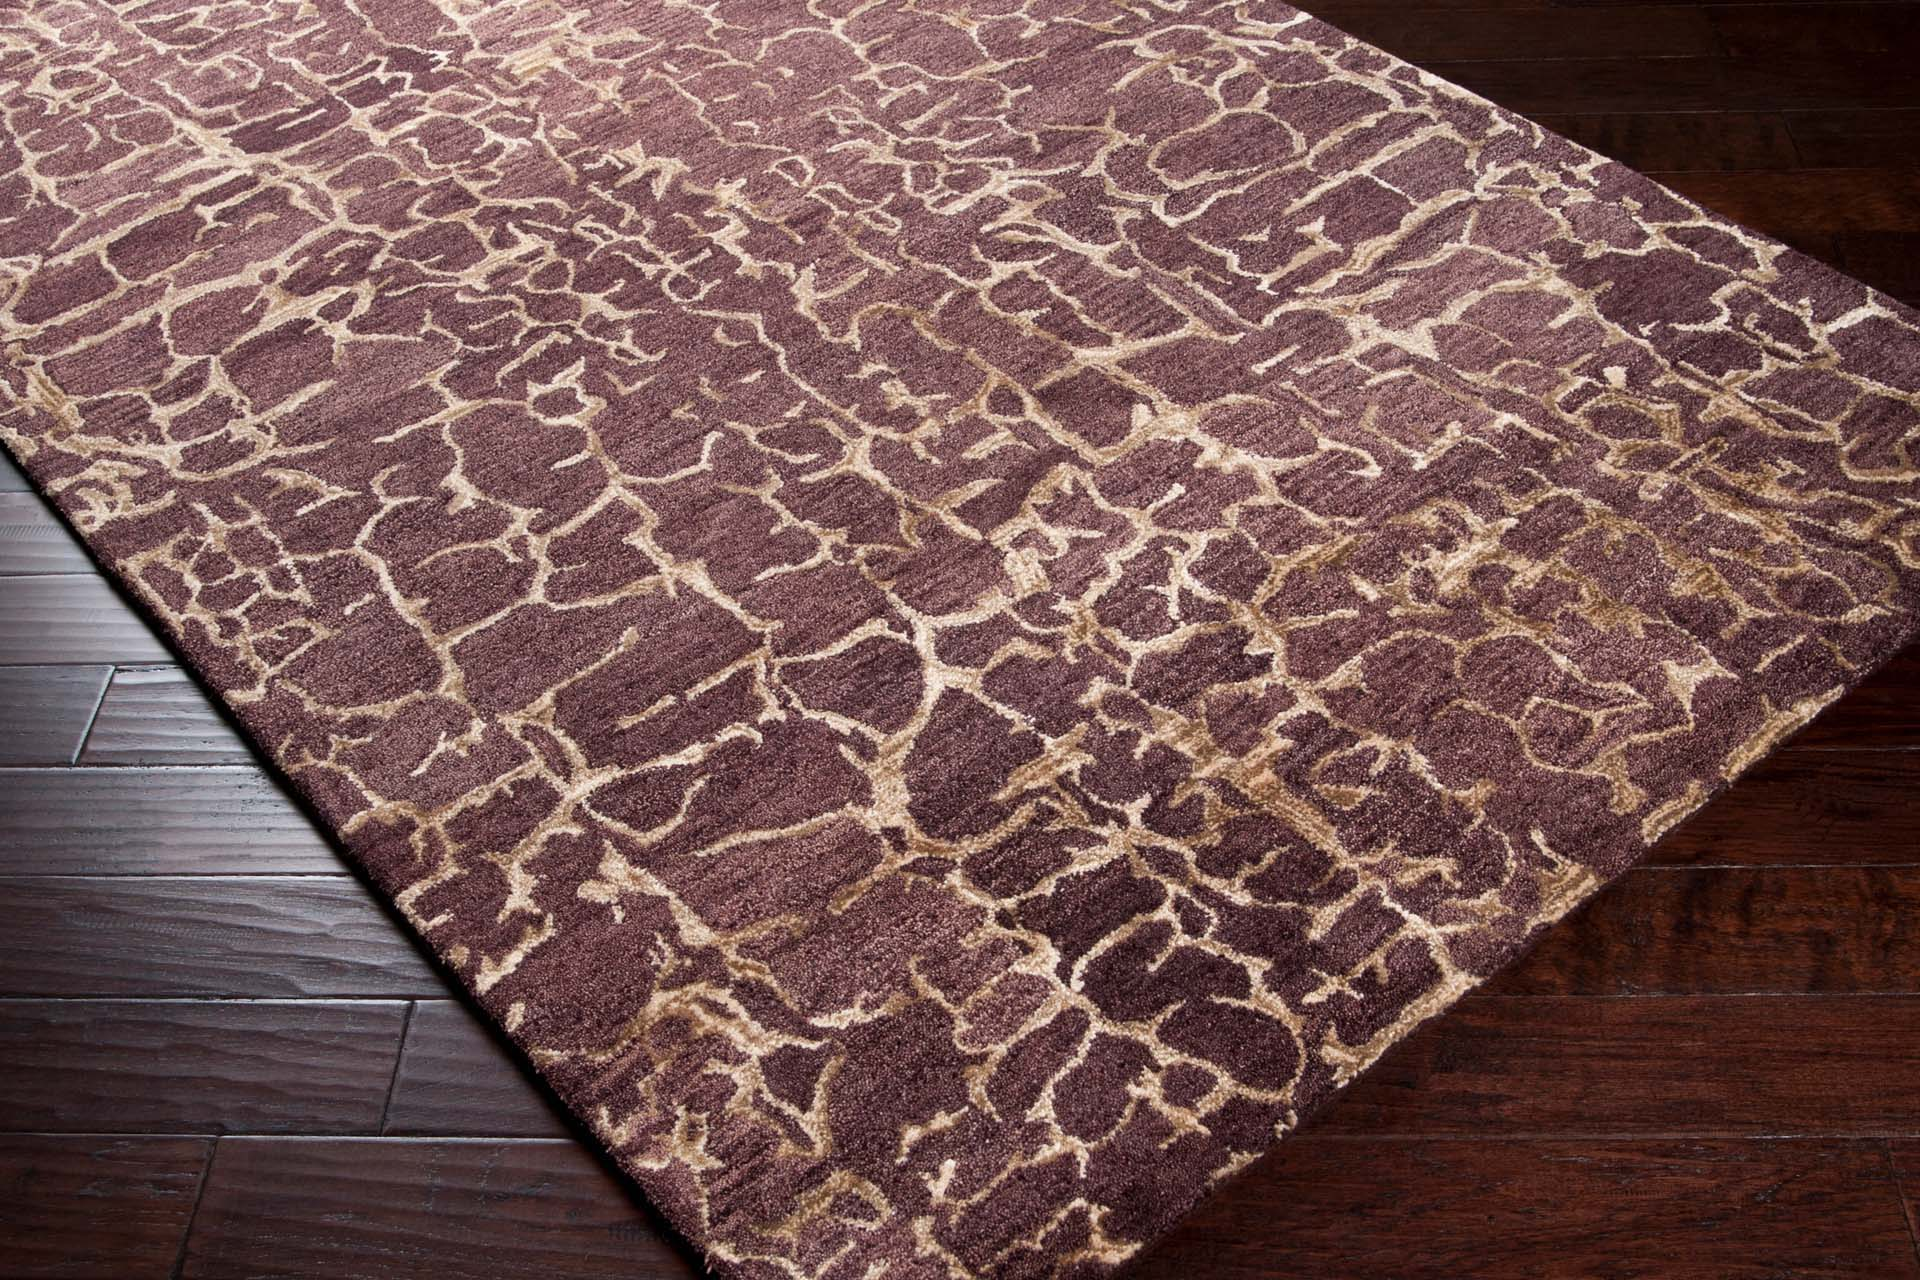 Trendy hand-tufted area rug from India with brown and tan textured pattern on wood floor